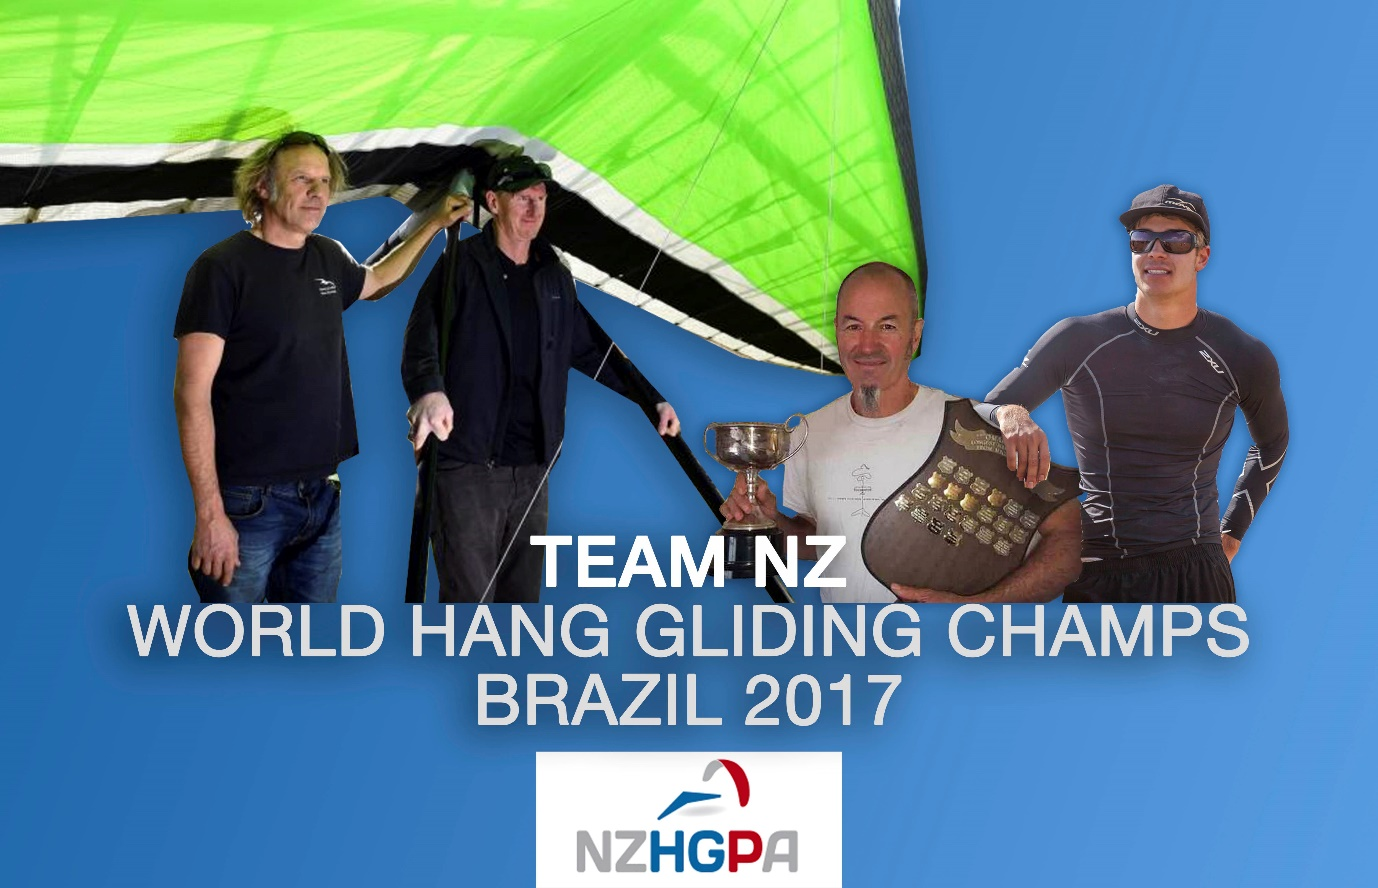 NZHGPA-GeneralNotices: Team NZ World Hang Gliding Champs, Brazil 2017